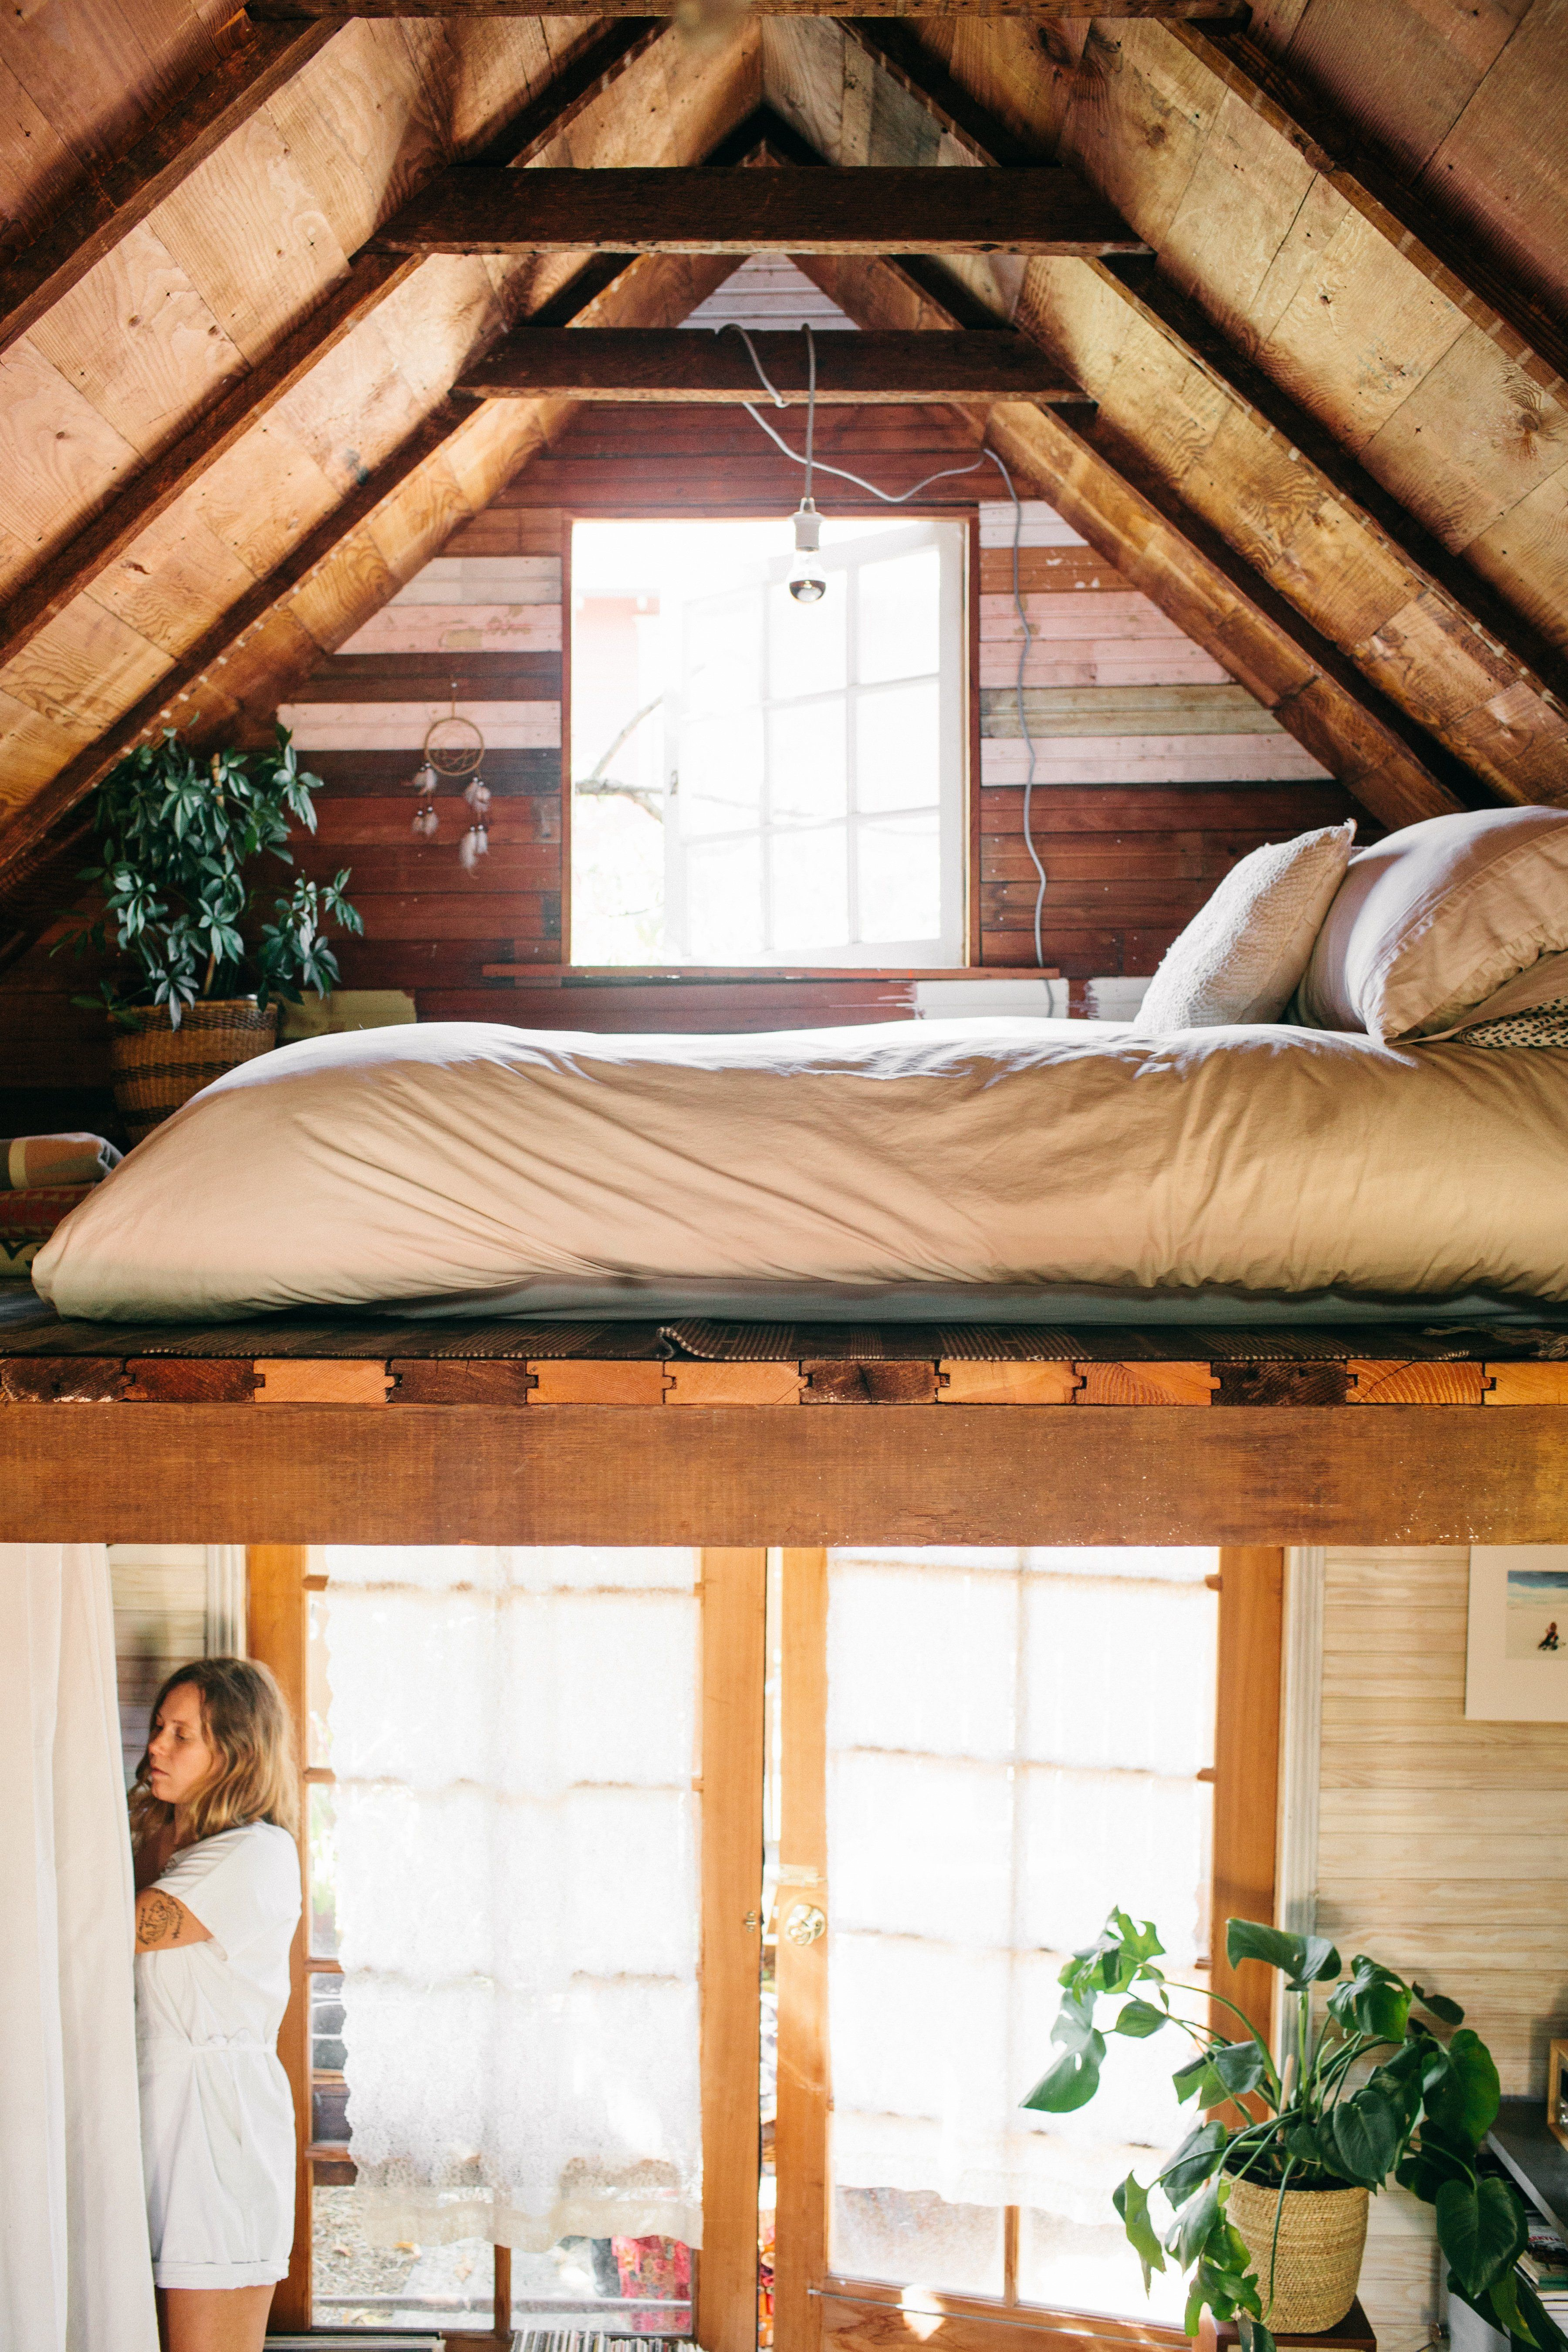 Loft bedroom privacy  Tour an Incredibly Cozy  Square Foot Cabin  Square feet Cabin